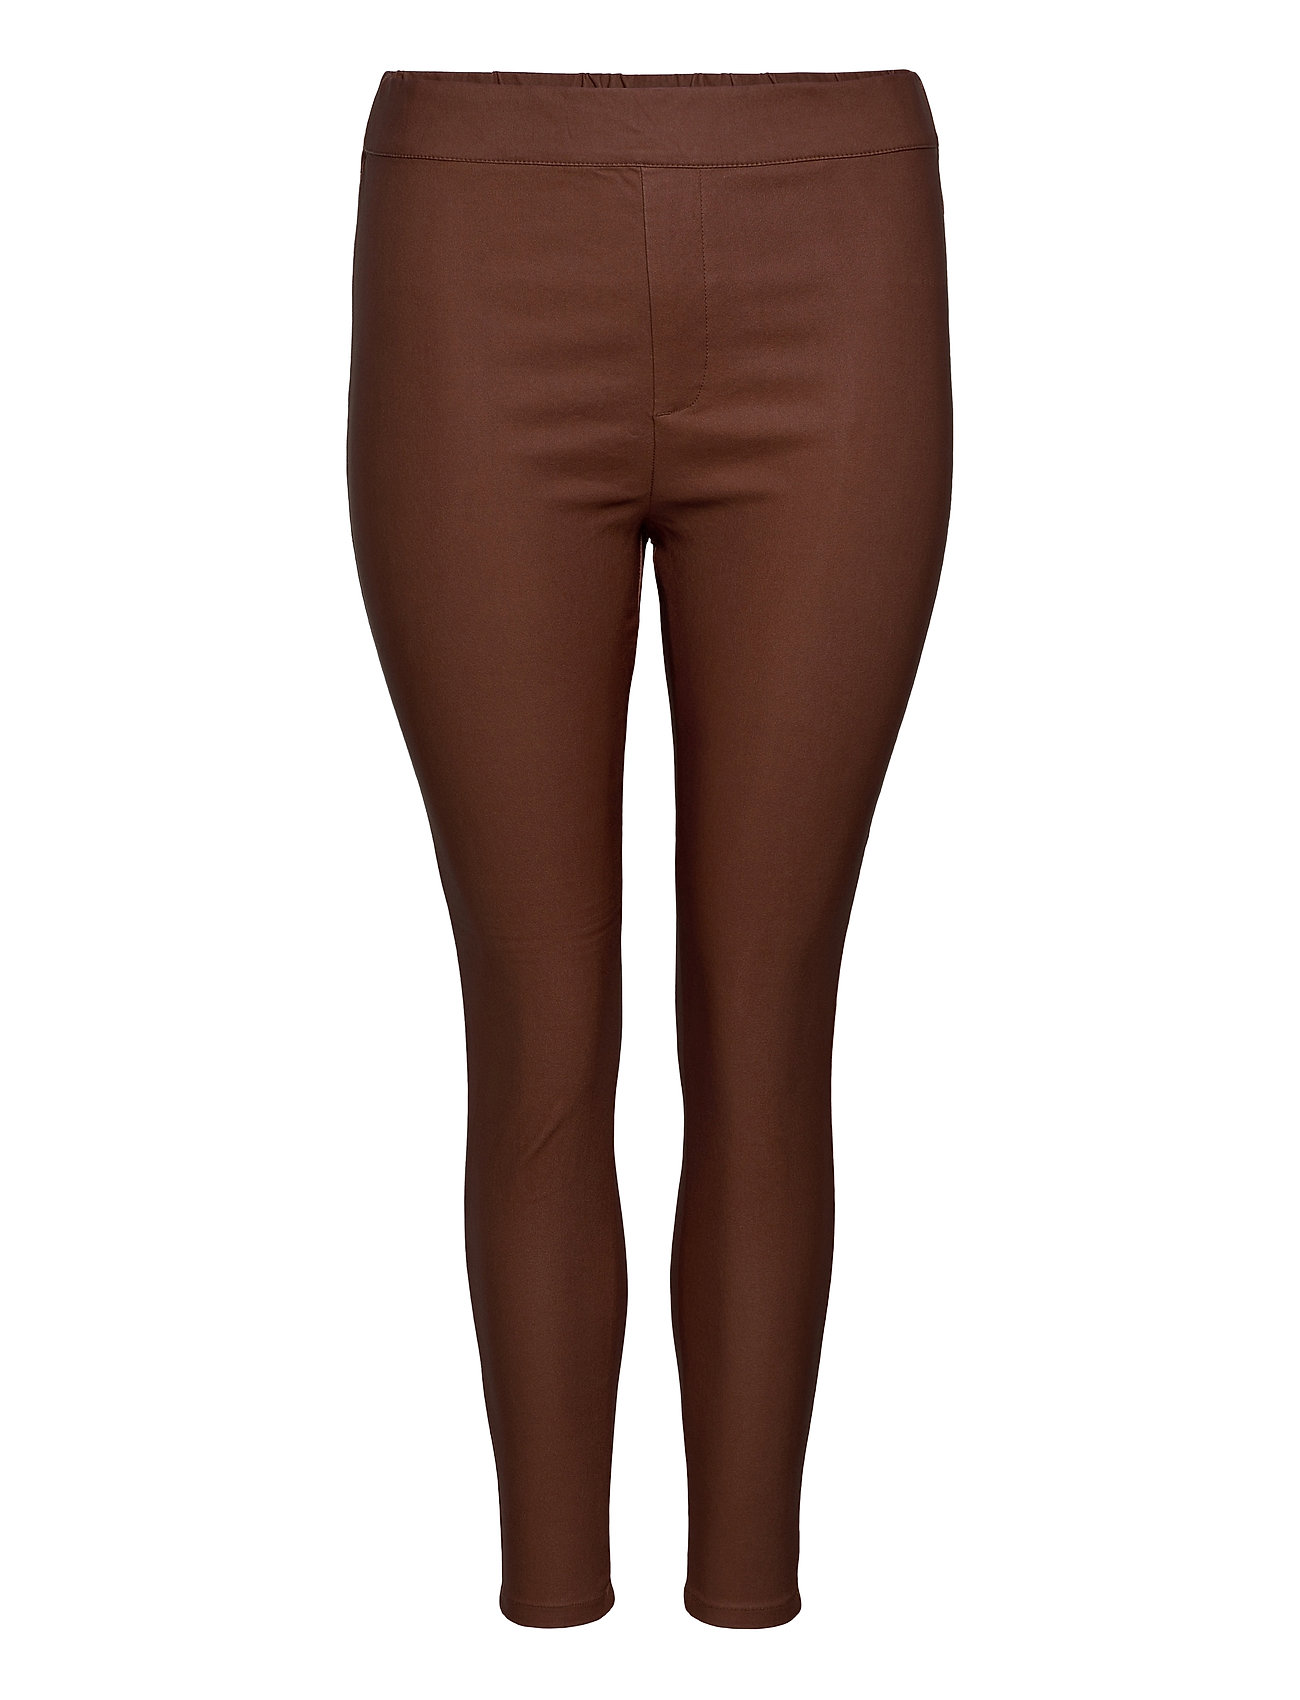 Image of Carargain Coated Pant Slimfit Bukser Brun ONLY Carmakoma (3453534025)